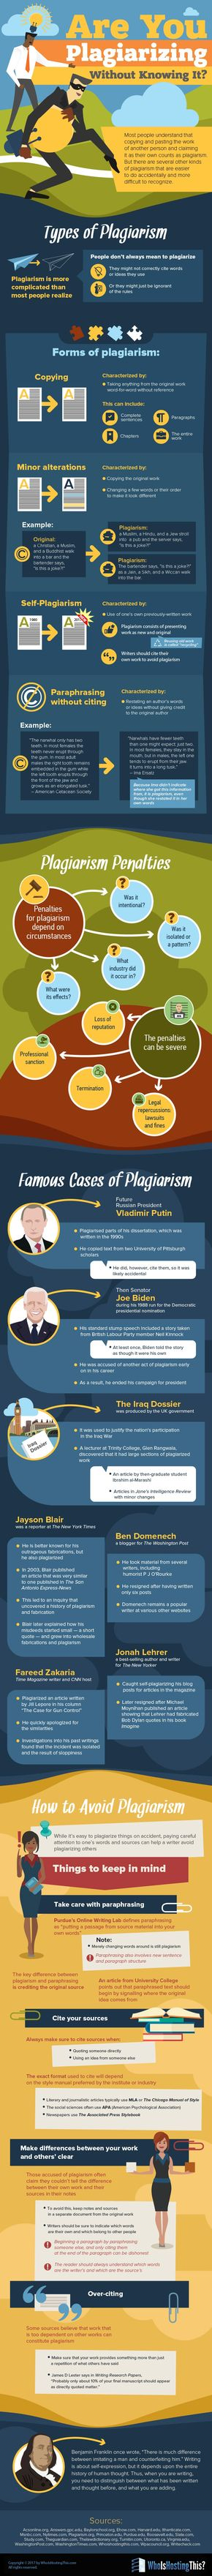 Are You Plagiarizing Without Knowing It Infographic Content Educational Act Exam Paraphrasing Language